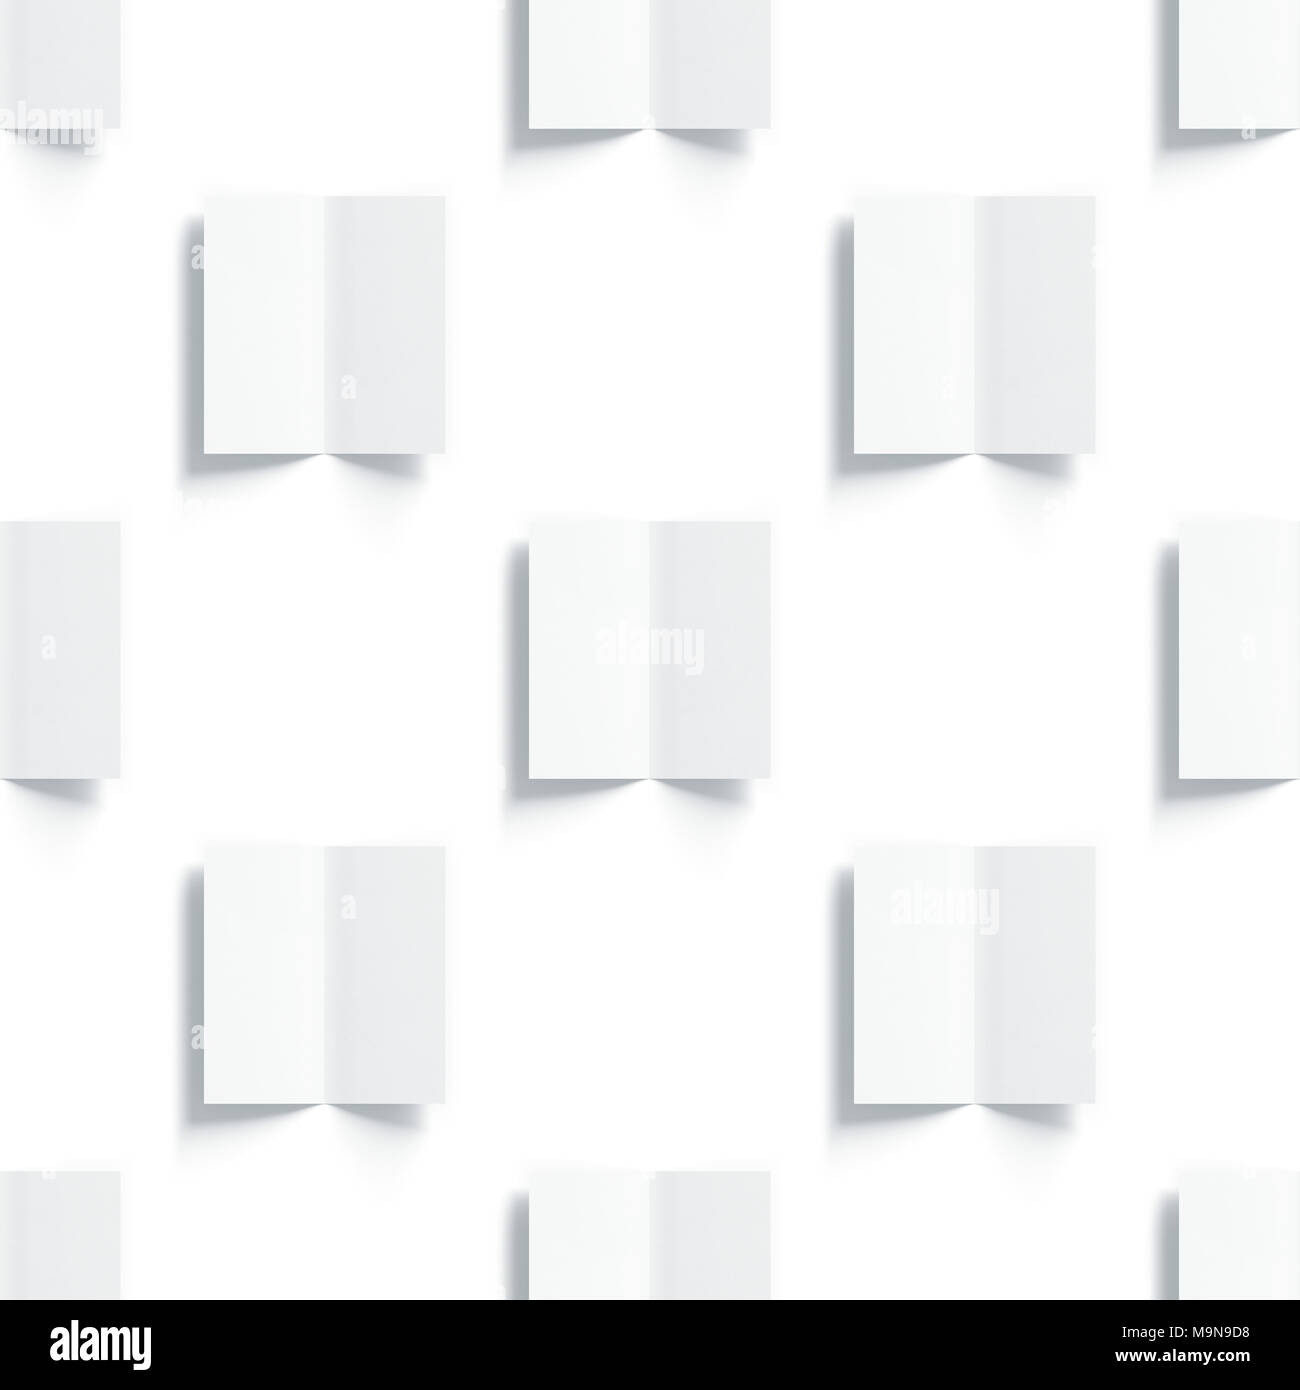 Blank white multi-page booklet mockups pattern, opened top view, 3d rendering. Plain twofold brochures mock ups set isolated. Folded book cover and fl Stock Photo